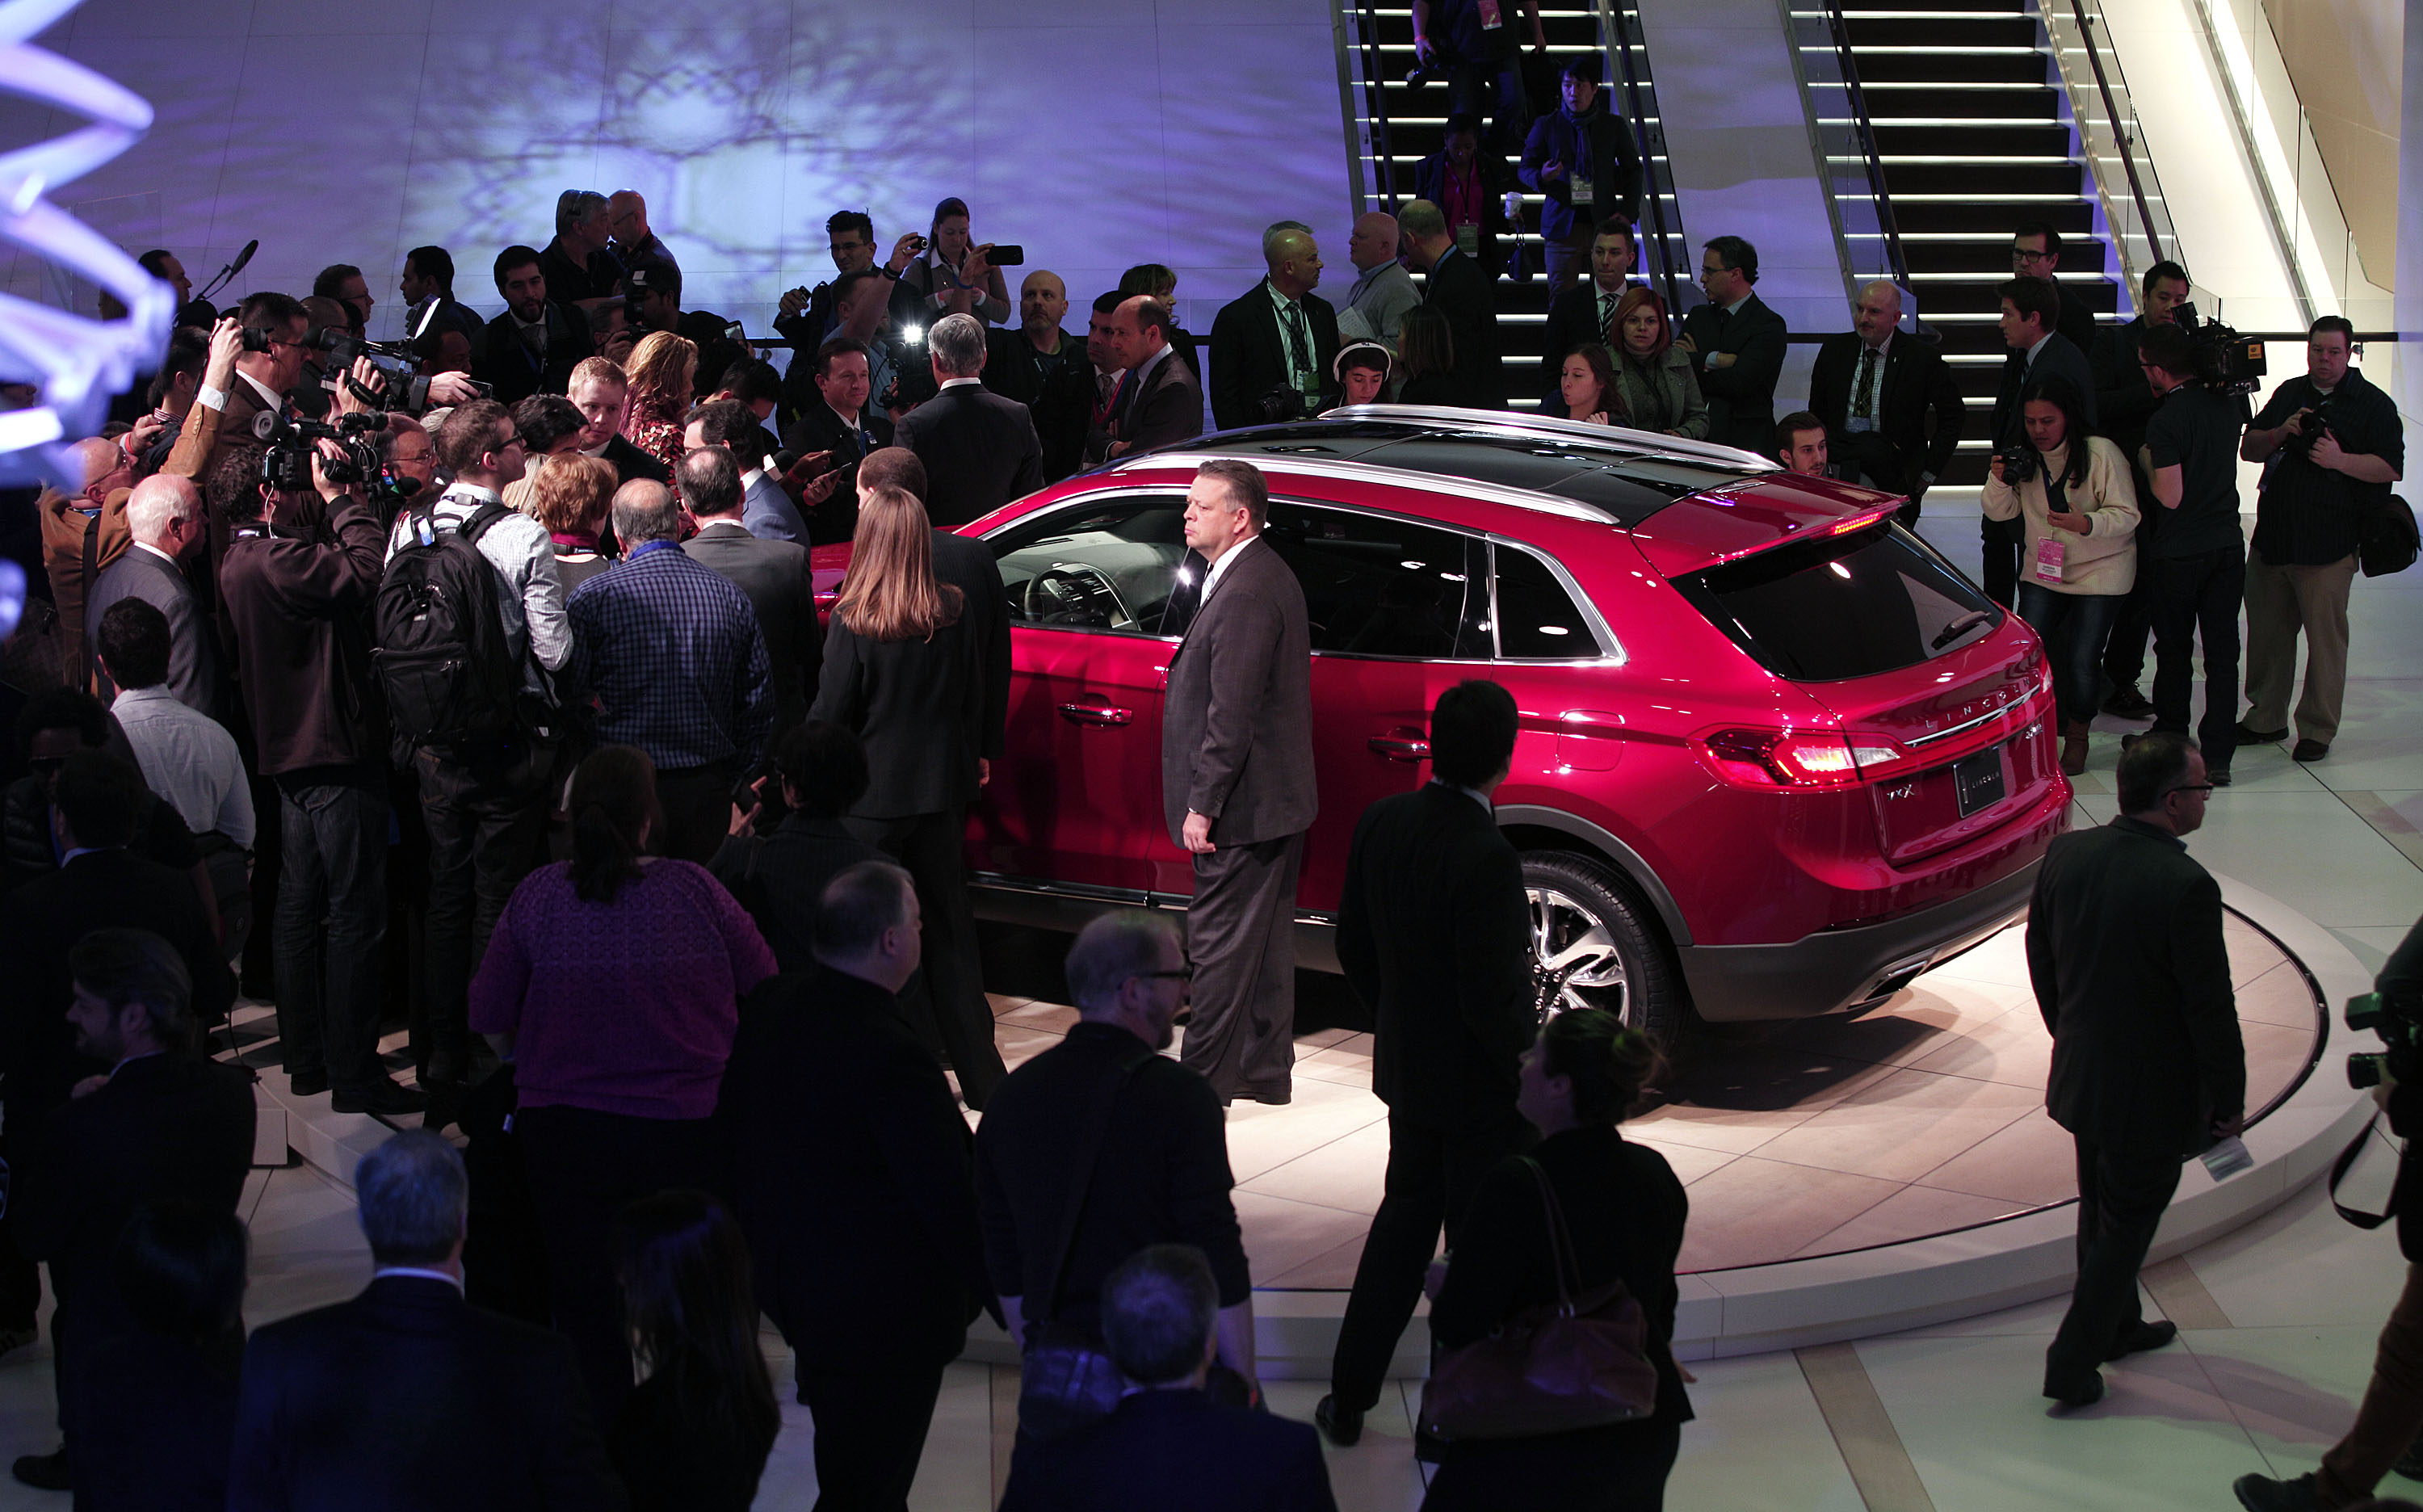 Detroit auto show cancelled, site to be used as coronavirus field hospital